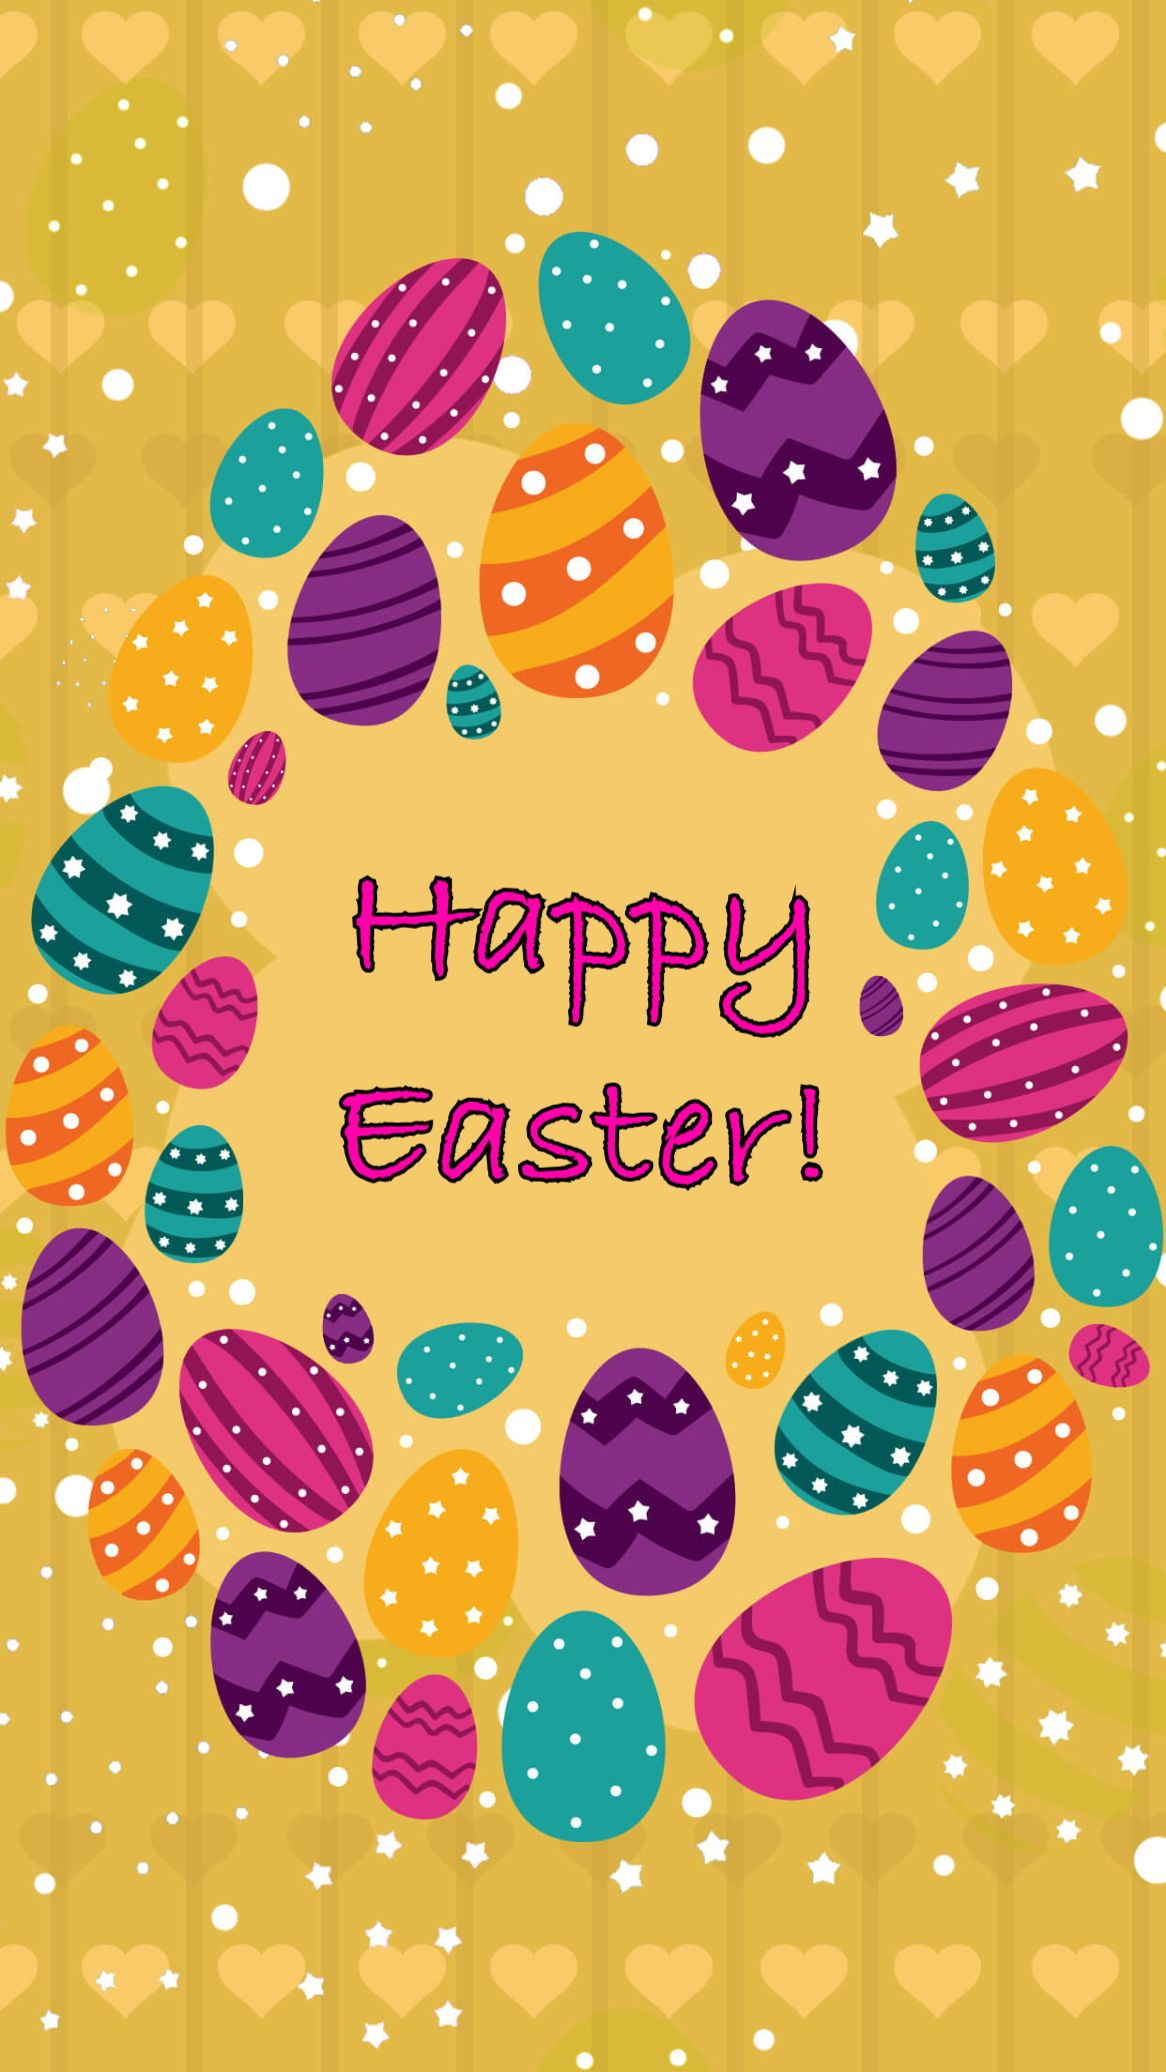 Easter wallpaper Wallpaper in 2019 Happy easter wallpaper 1166x2072